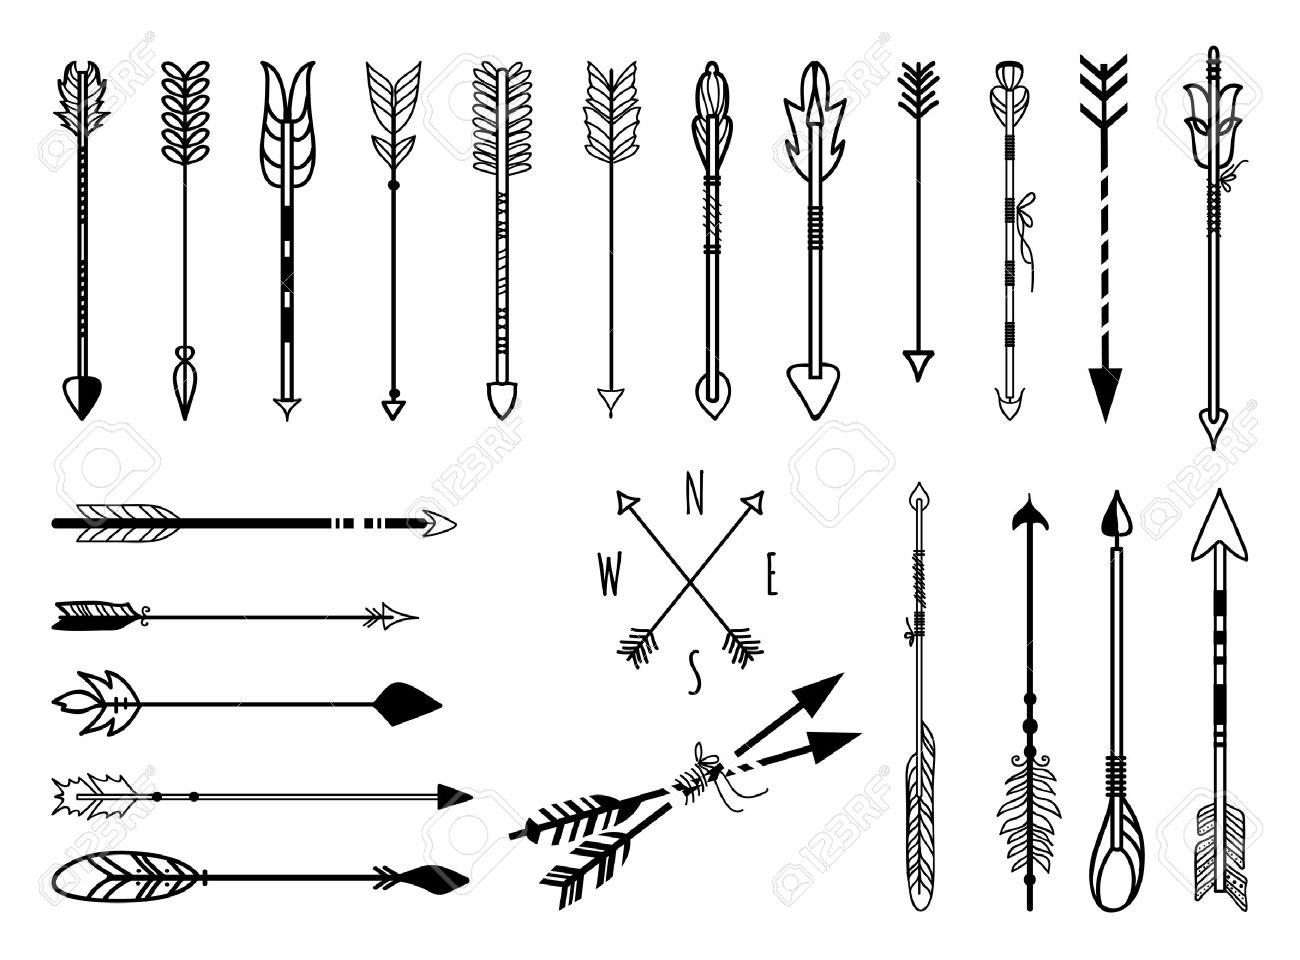 Hand drawn arrow clipart banner freeuse stock Hand Drawn Arrows Set Royalty Free Cliparts, Vectors, And Stock ... banner freeuse stock